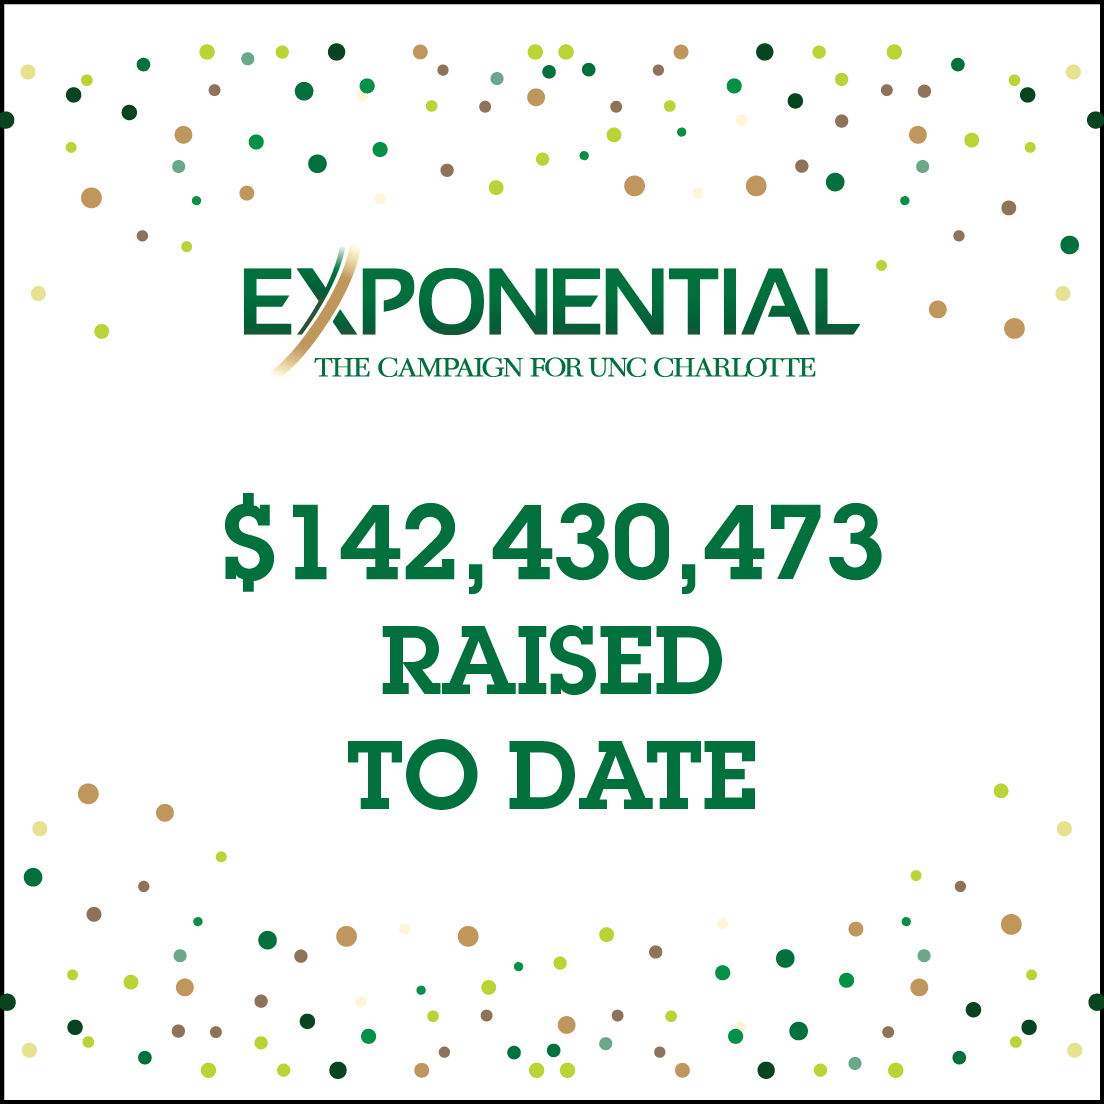 Exponential: The Campaign for UNC Charlotte  $142,430,473 Raised to Date